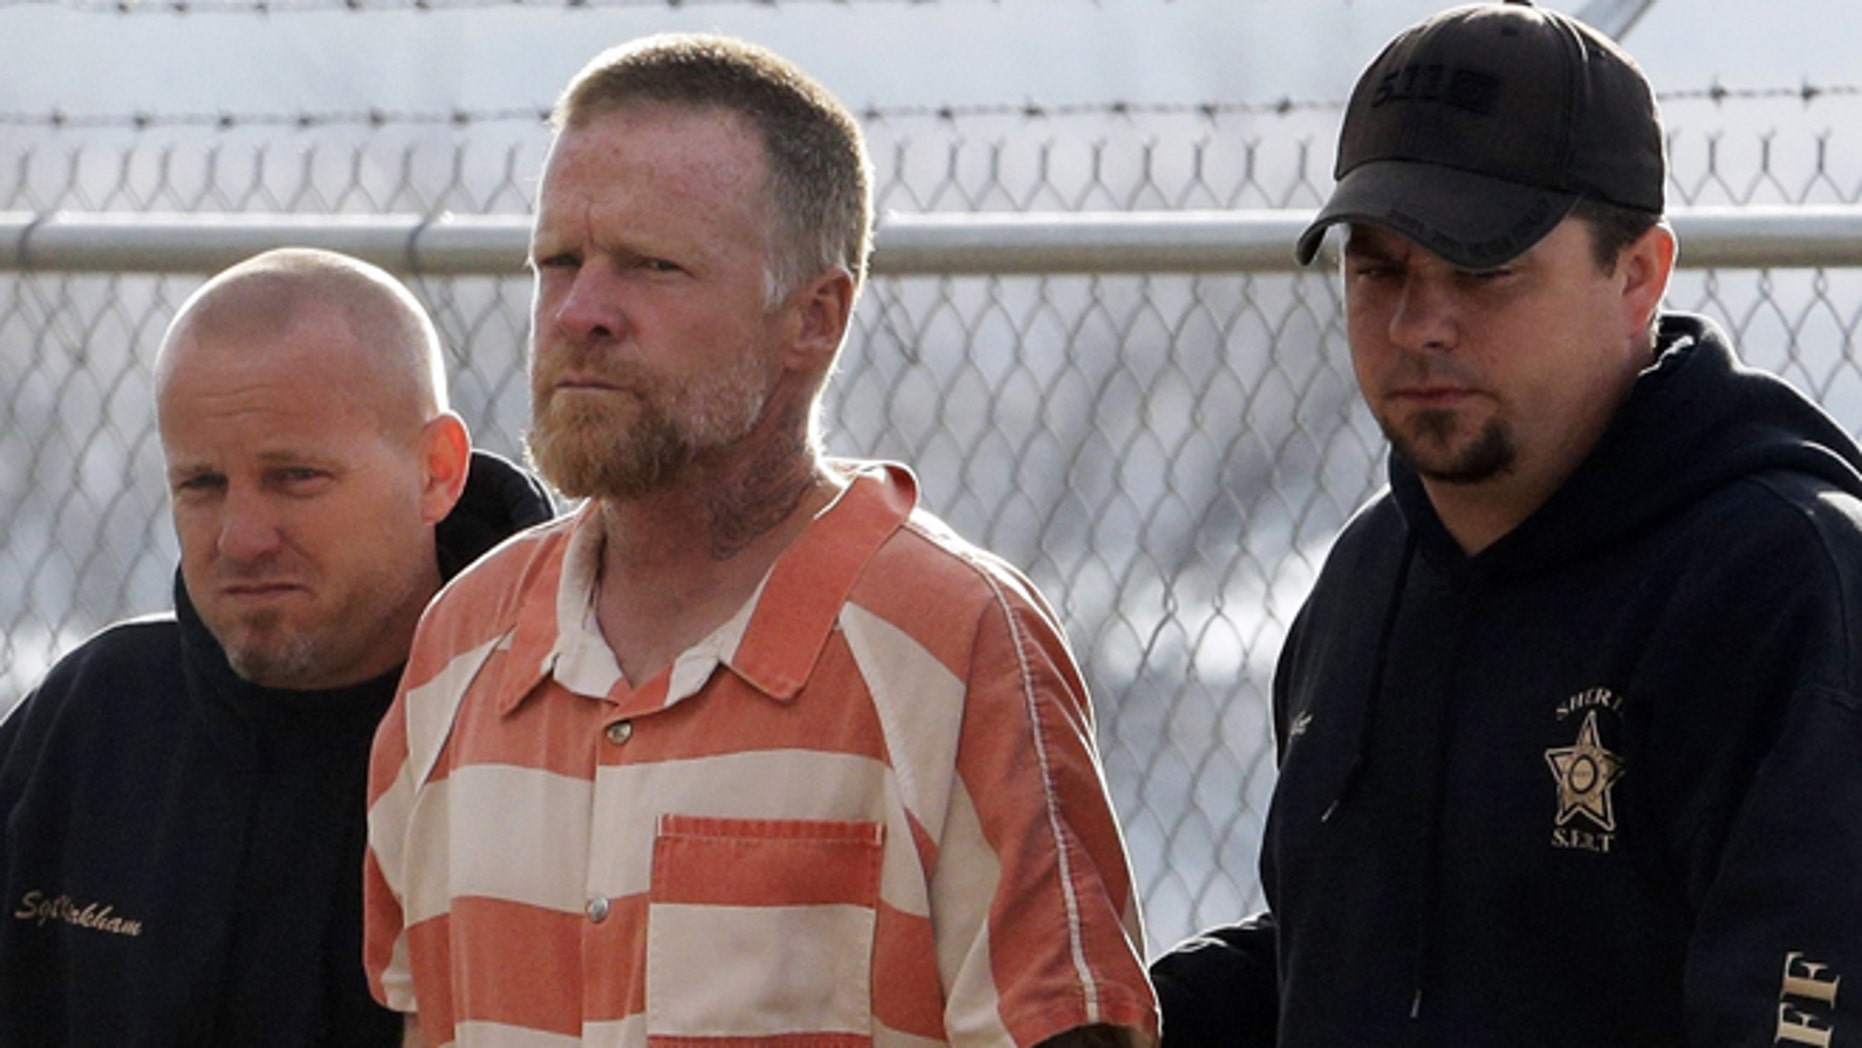 April 2, 2013: In this file photo, Troy James Knapp, 45, is escorted by Sanpete Sheriff's deputies to the Sanpete County Jail in Manti, Utah.